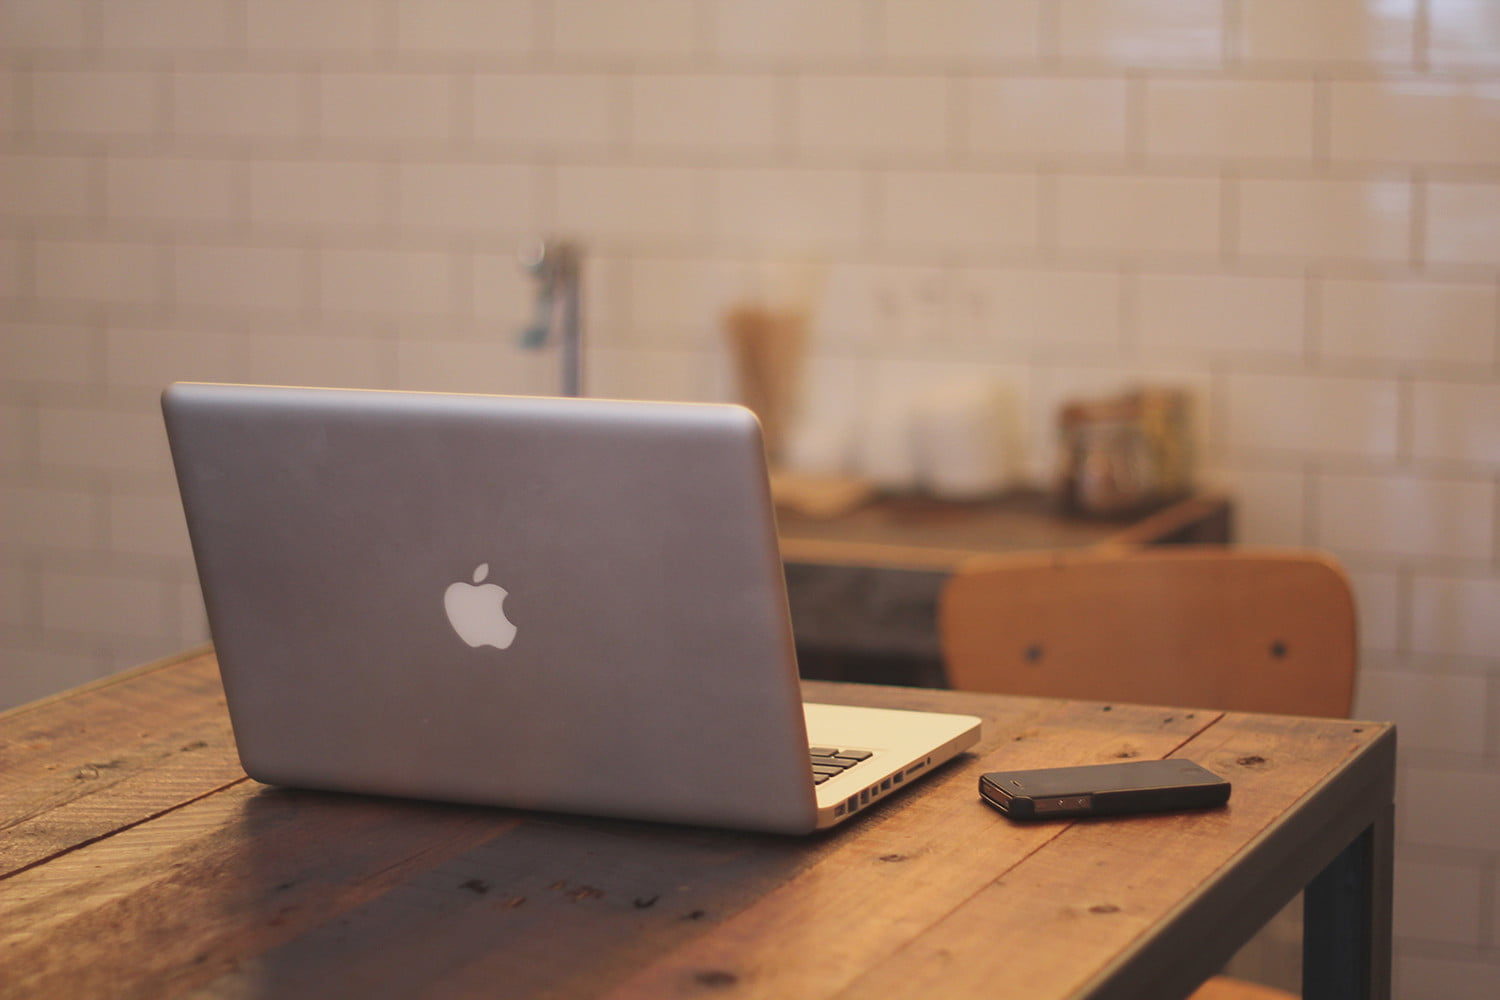 Here's why phishing attacks against Macs are rising at an alarming rate